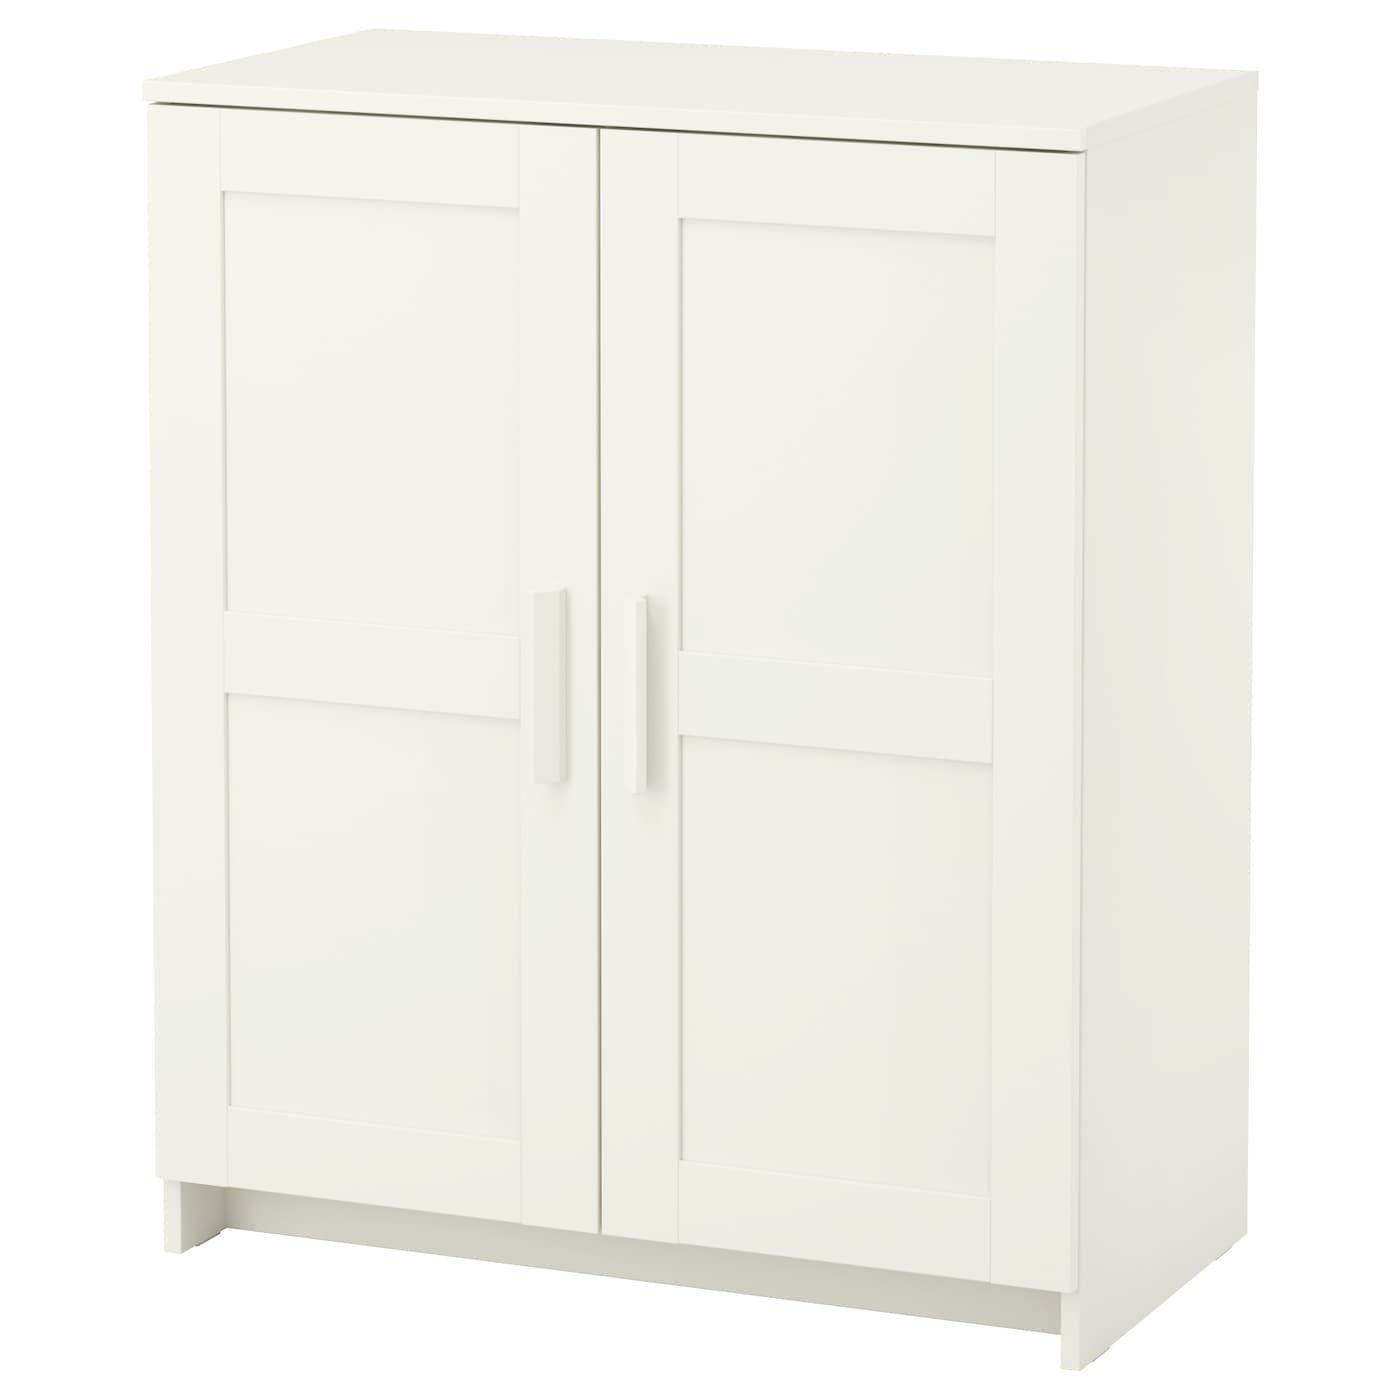 brimnes cabinet with doors white 78x95 cm ikea. Black Bedroom Furniture Sets. Home Design Ideas